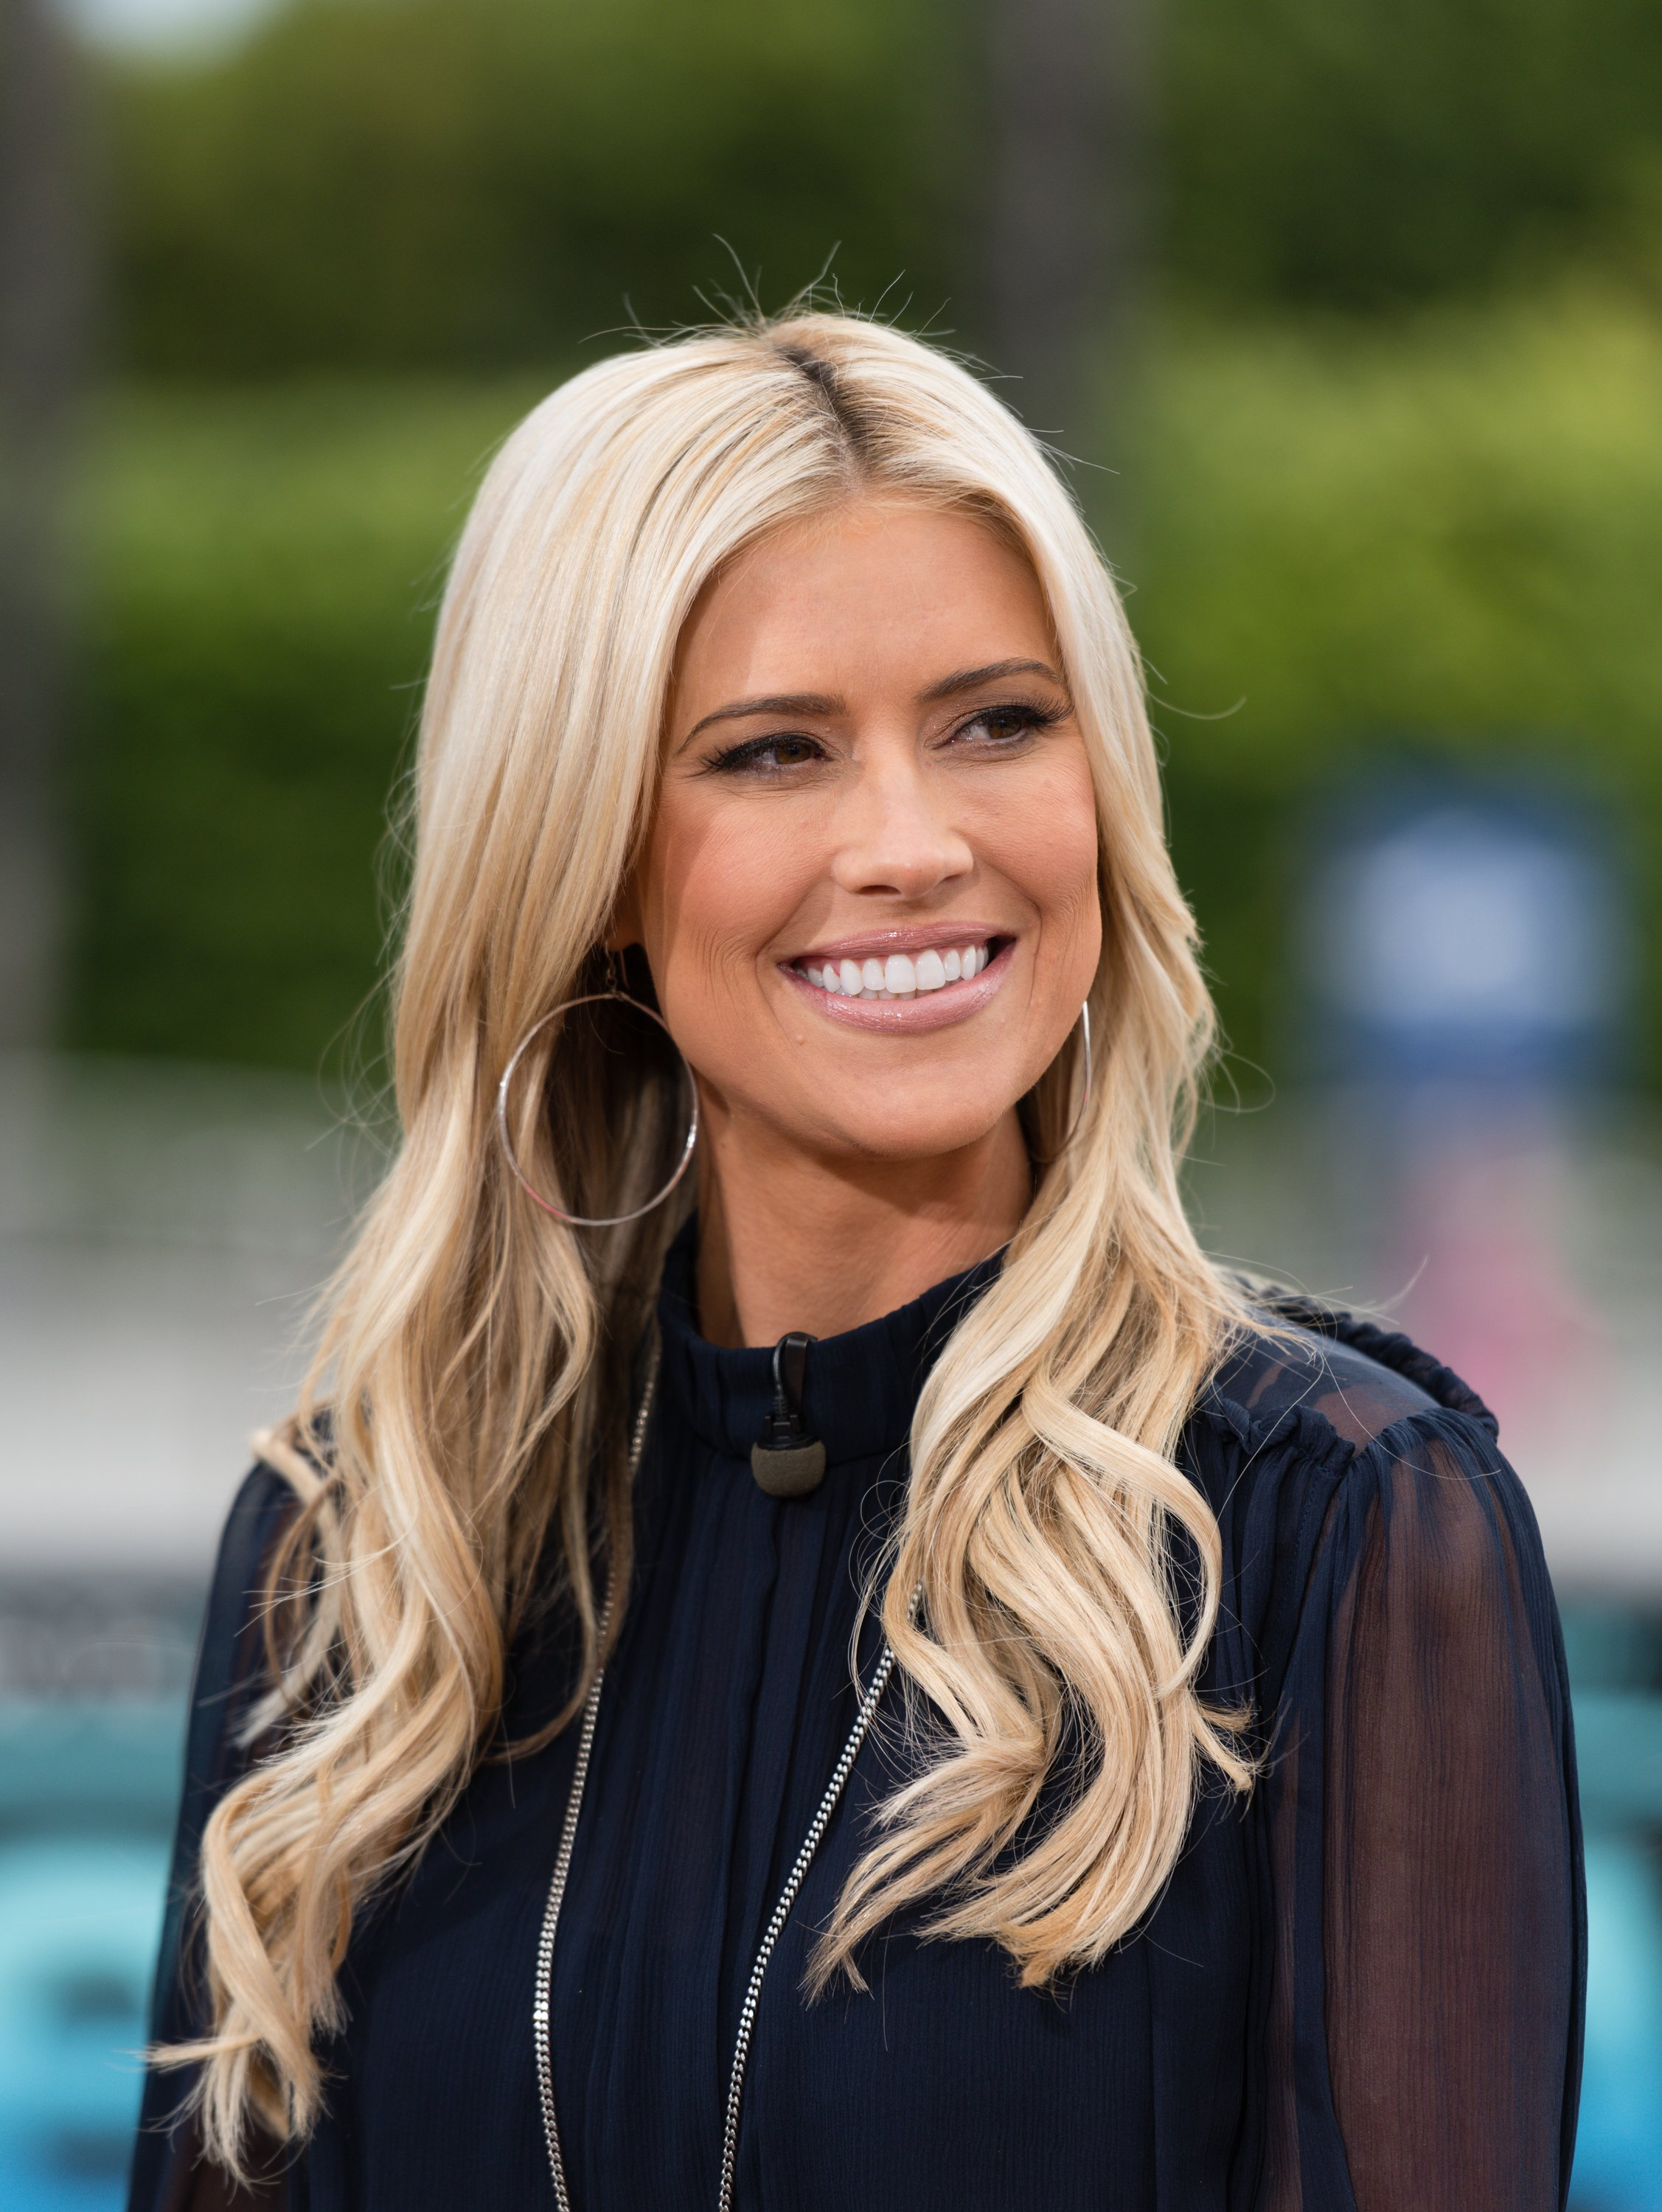 """Christina Anstead visits """"Extra"""" at Universal Studios Hollywood on May 22, 2019 in Universal City, California 